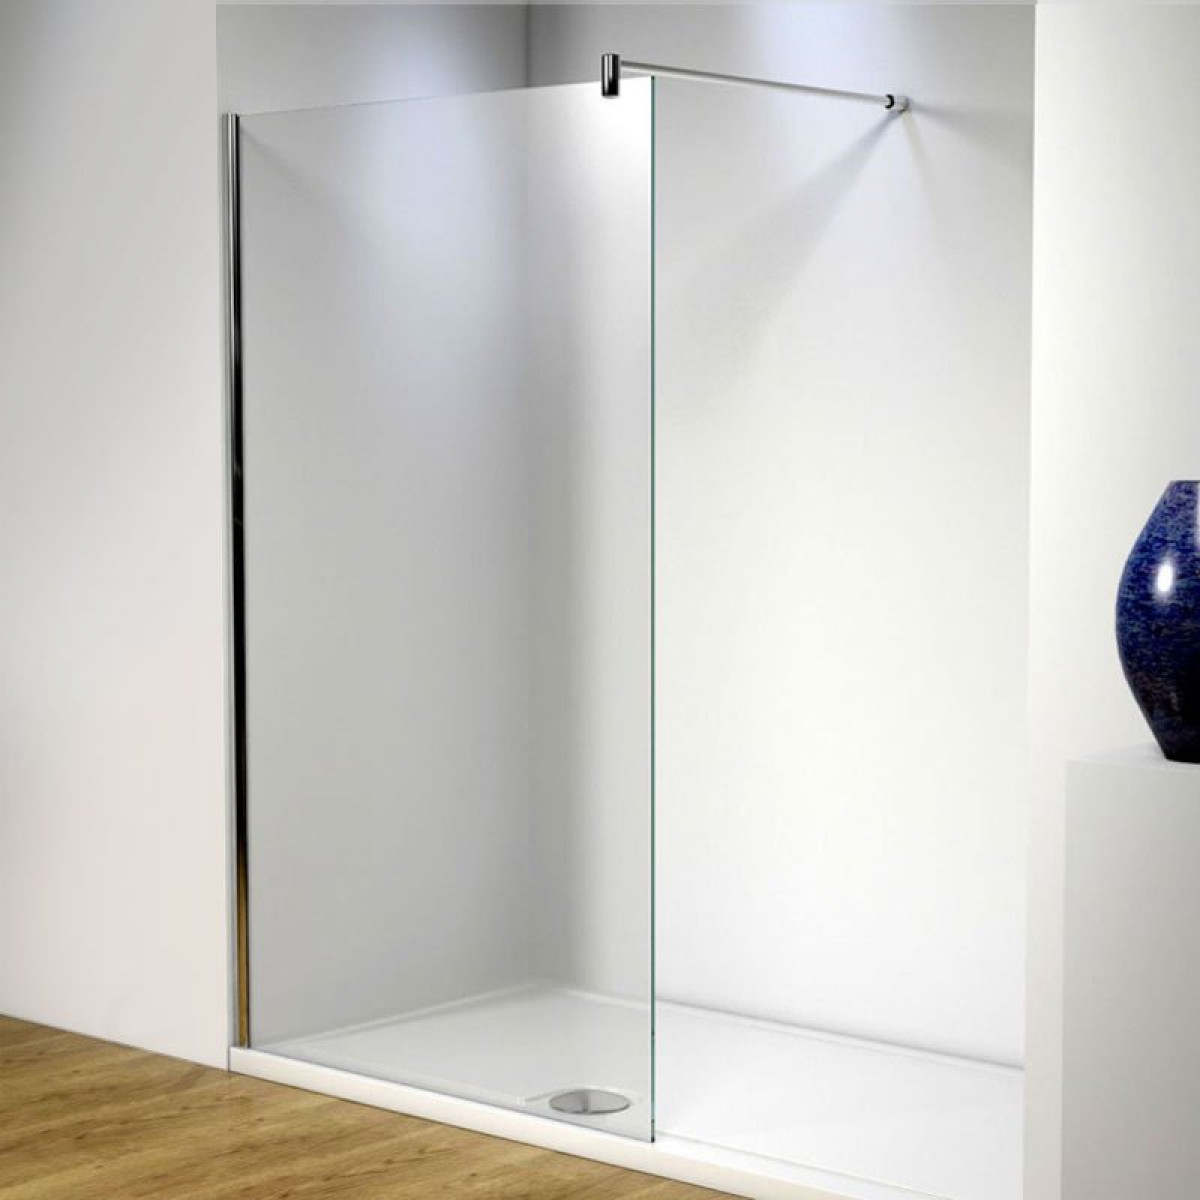 Kudos Ultimate 900mm Wetroom Panel 5wp900